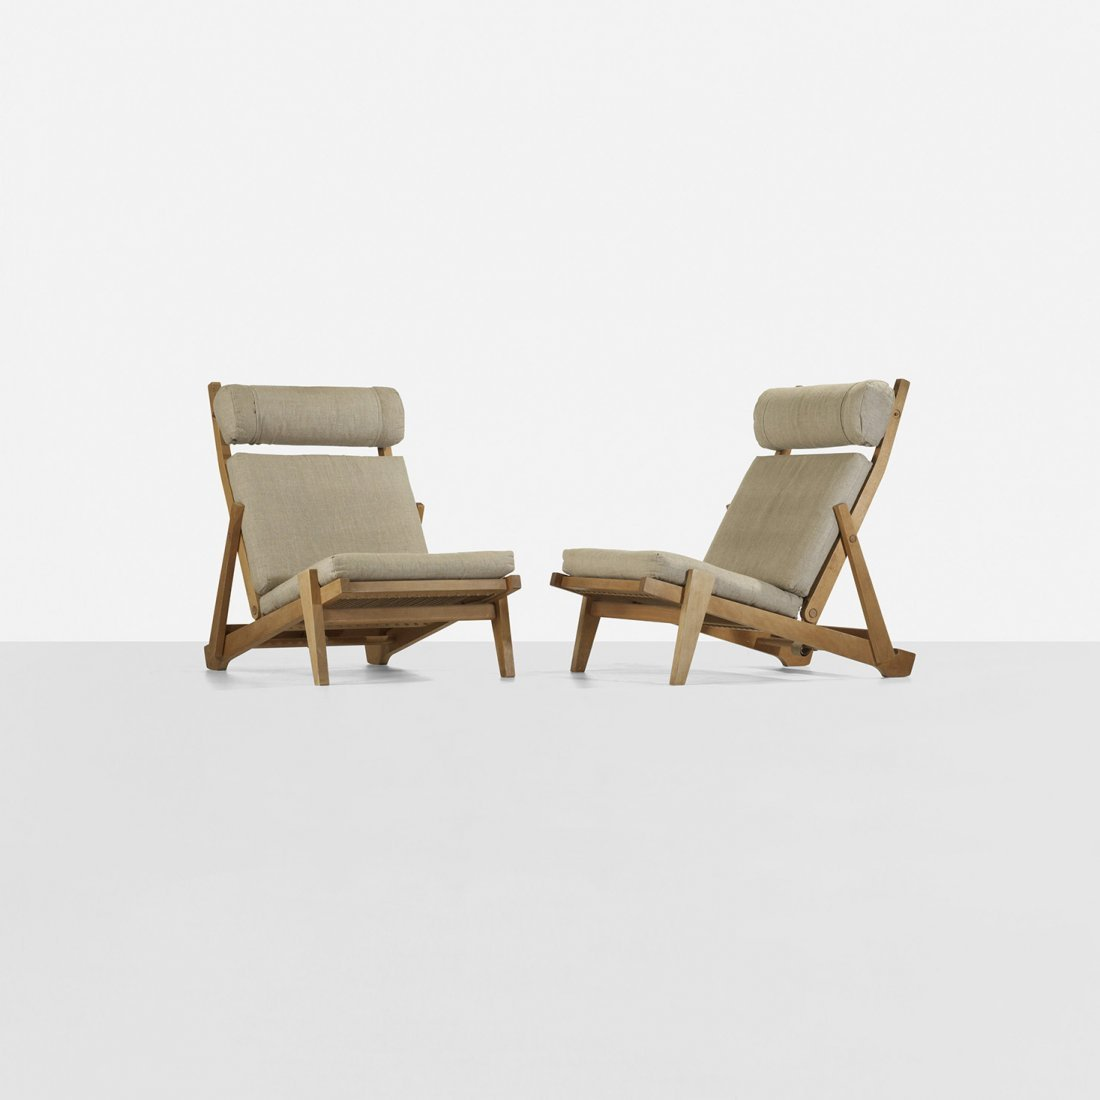 181: Hans Wegner adjustable lounge chairs, pair